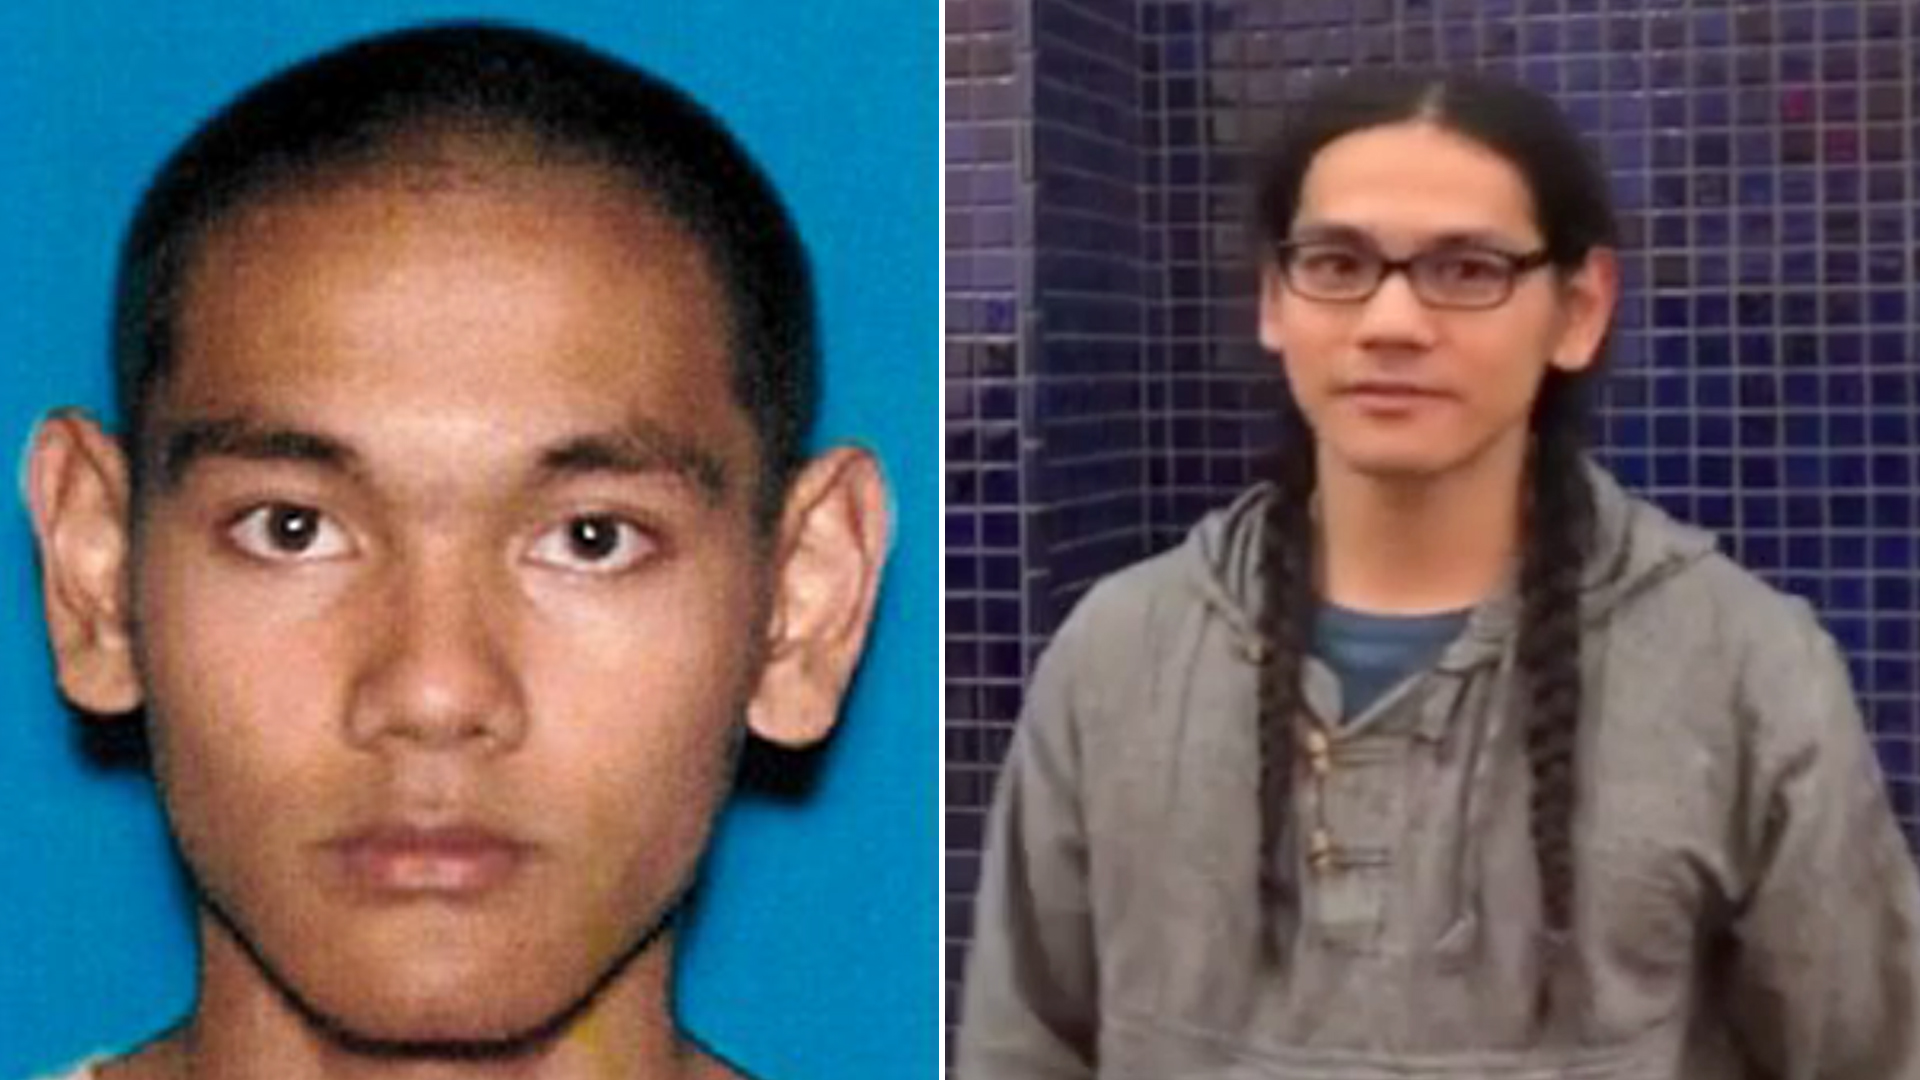 Mark Steven Domingo appears in undated photos provided by the FBI on April 29, 2019.